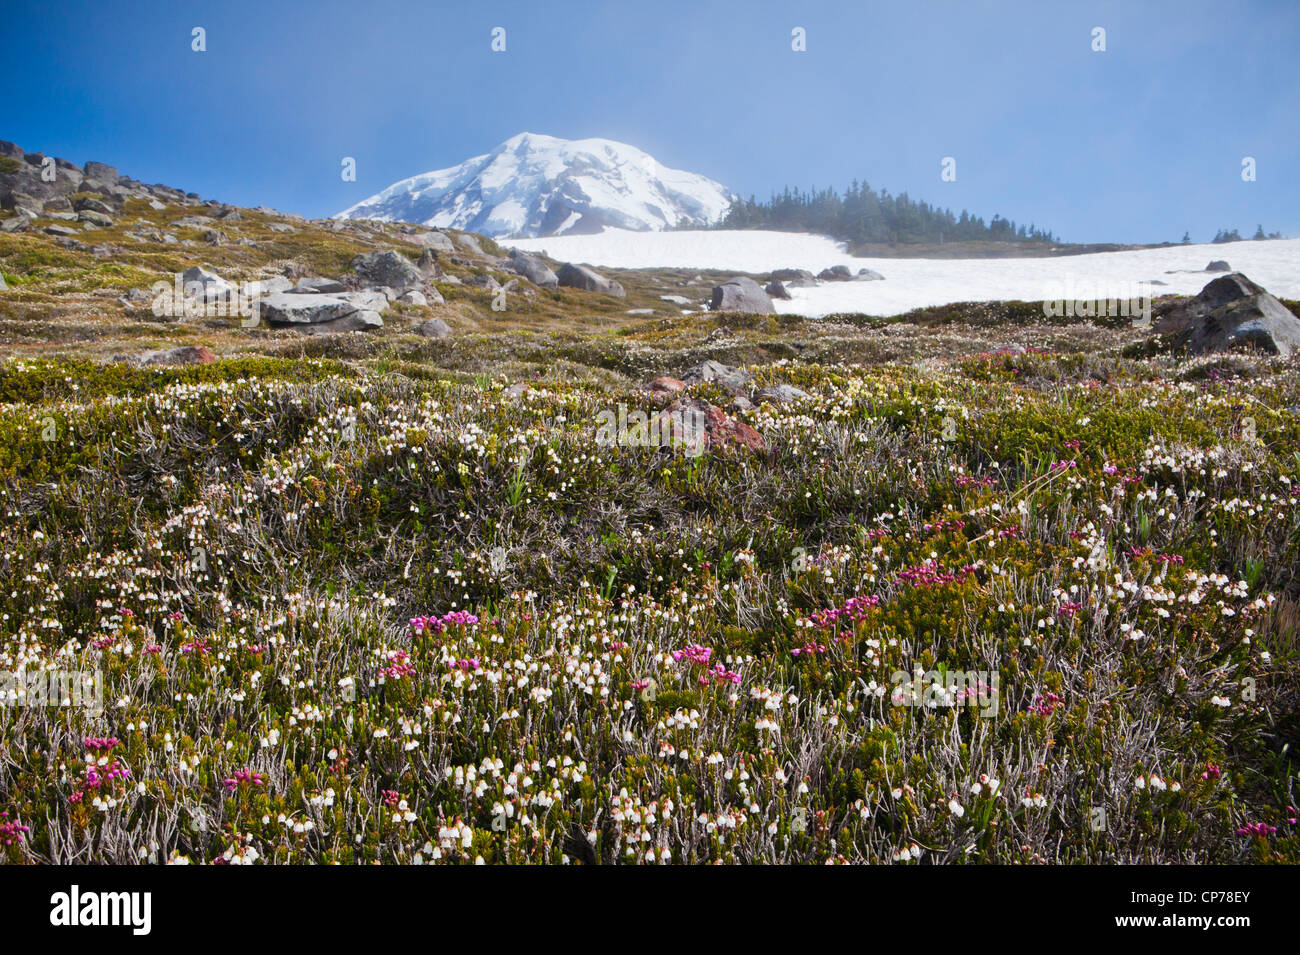 The top of Mount Rainier peaking up above Spray Park in Mount Ranier National Park, Washington, USA. - Stock Image